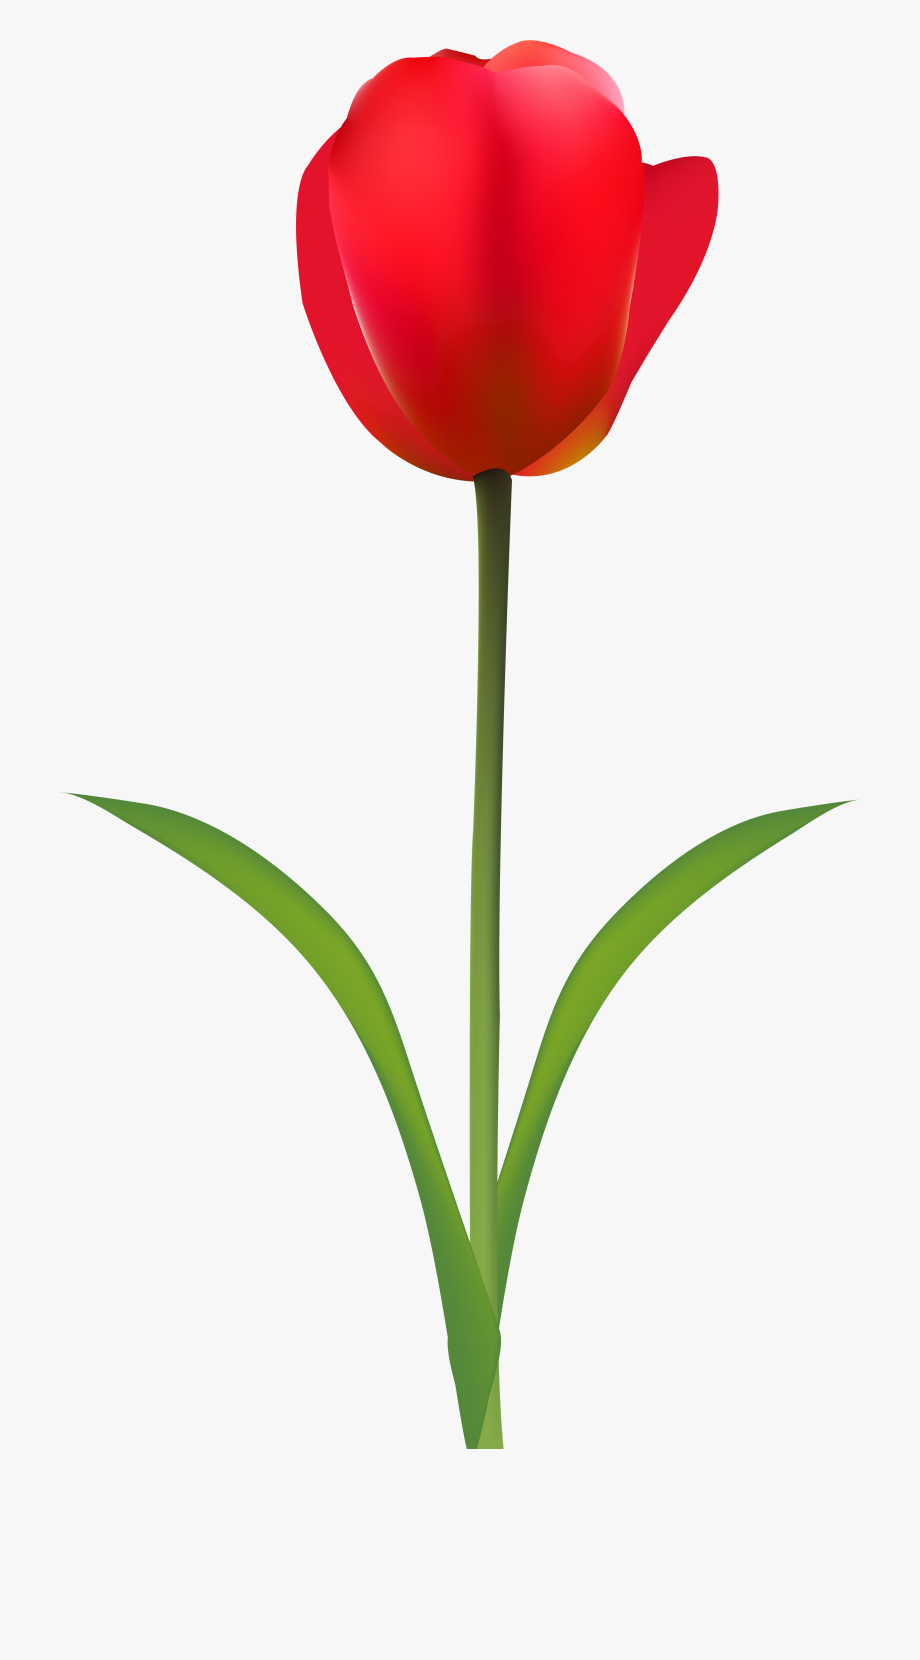 Red tulip clipart graphic transparent library Tulip Clipart Transparent Background - Red Tulip Clip Art ... graphic transparent library